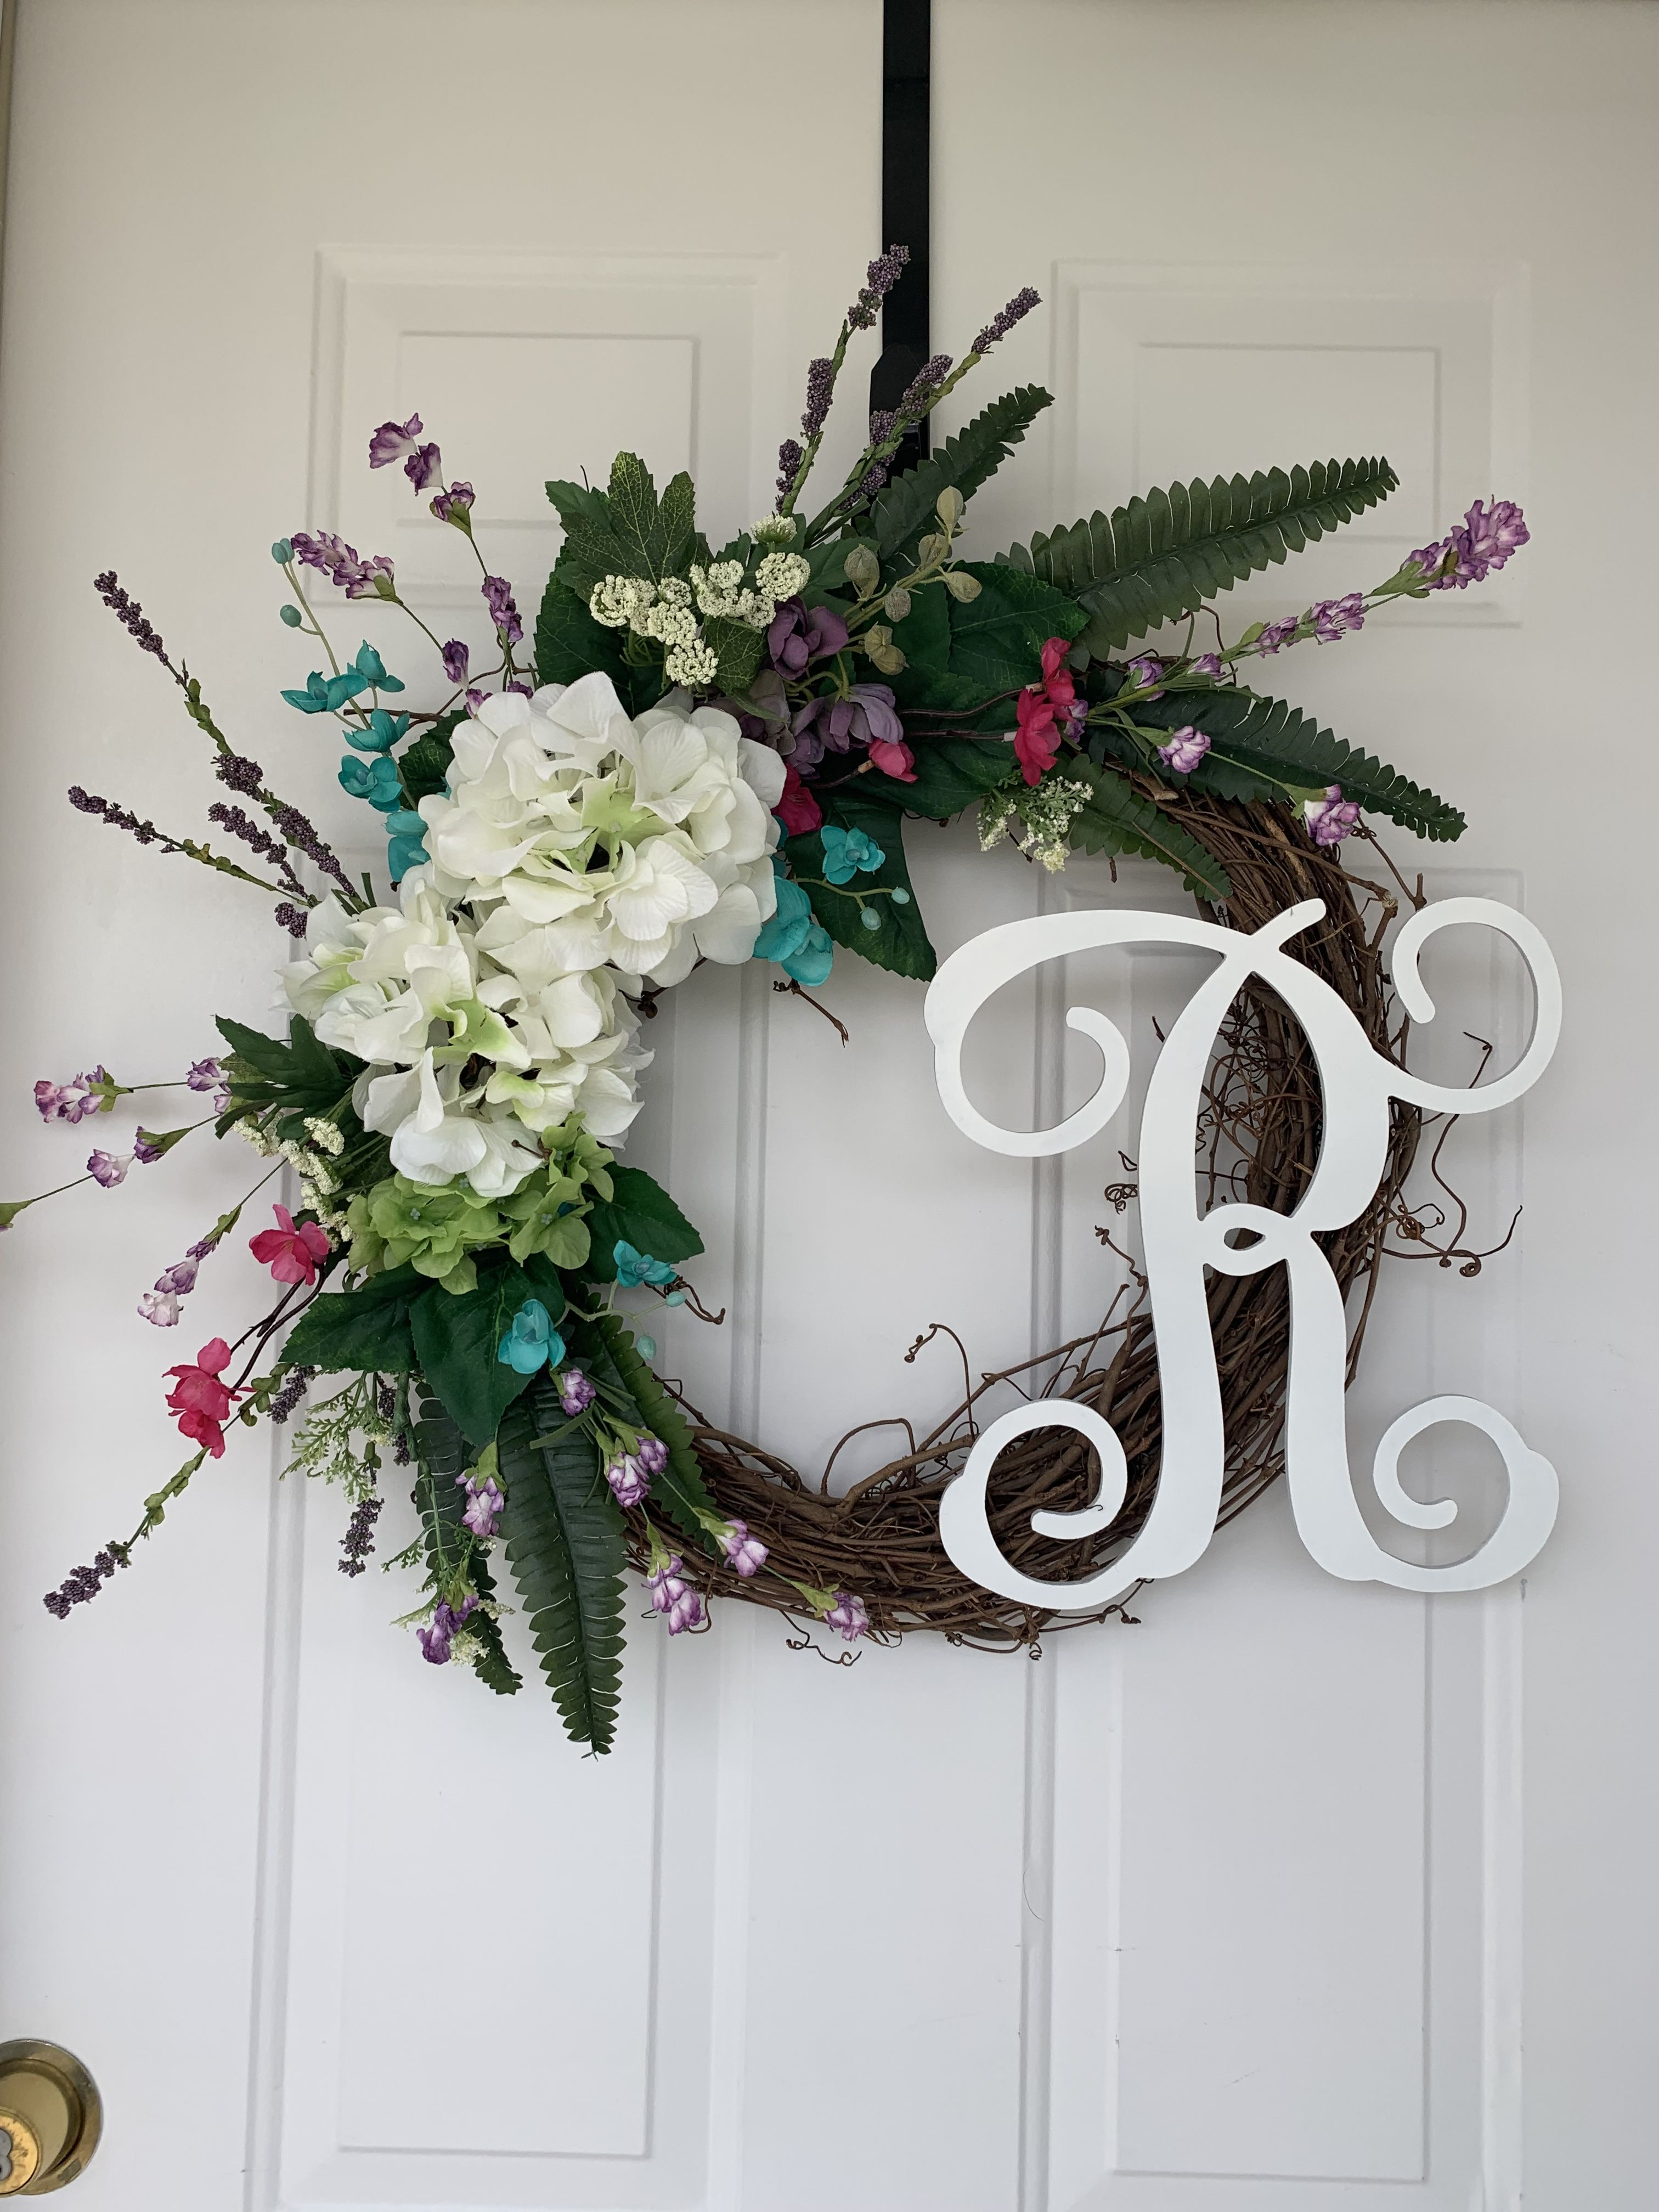 Spring Wreath Full Of Hydrangeas Spring Flowers And Tons Of Greenery Script Monogram Added To Complete The Lo Monogram Wreath Spring Wreath Hydrangea Wreath